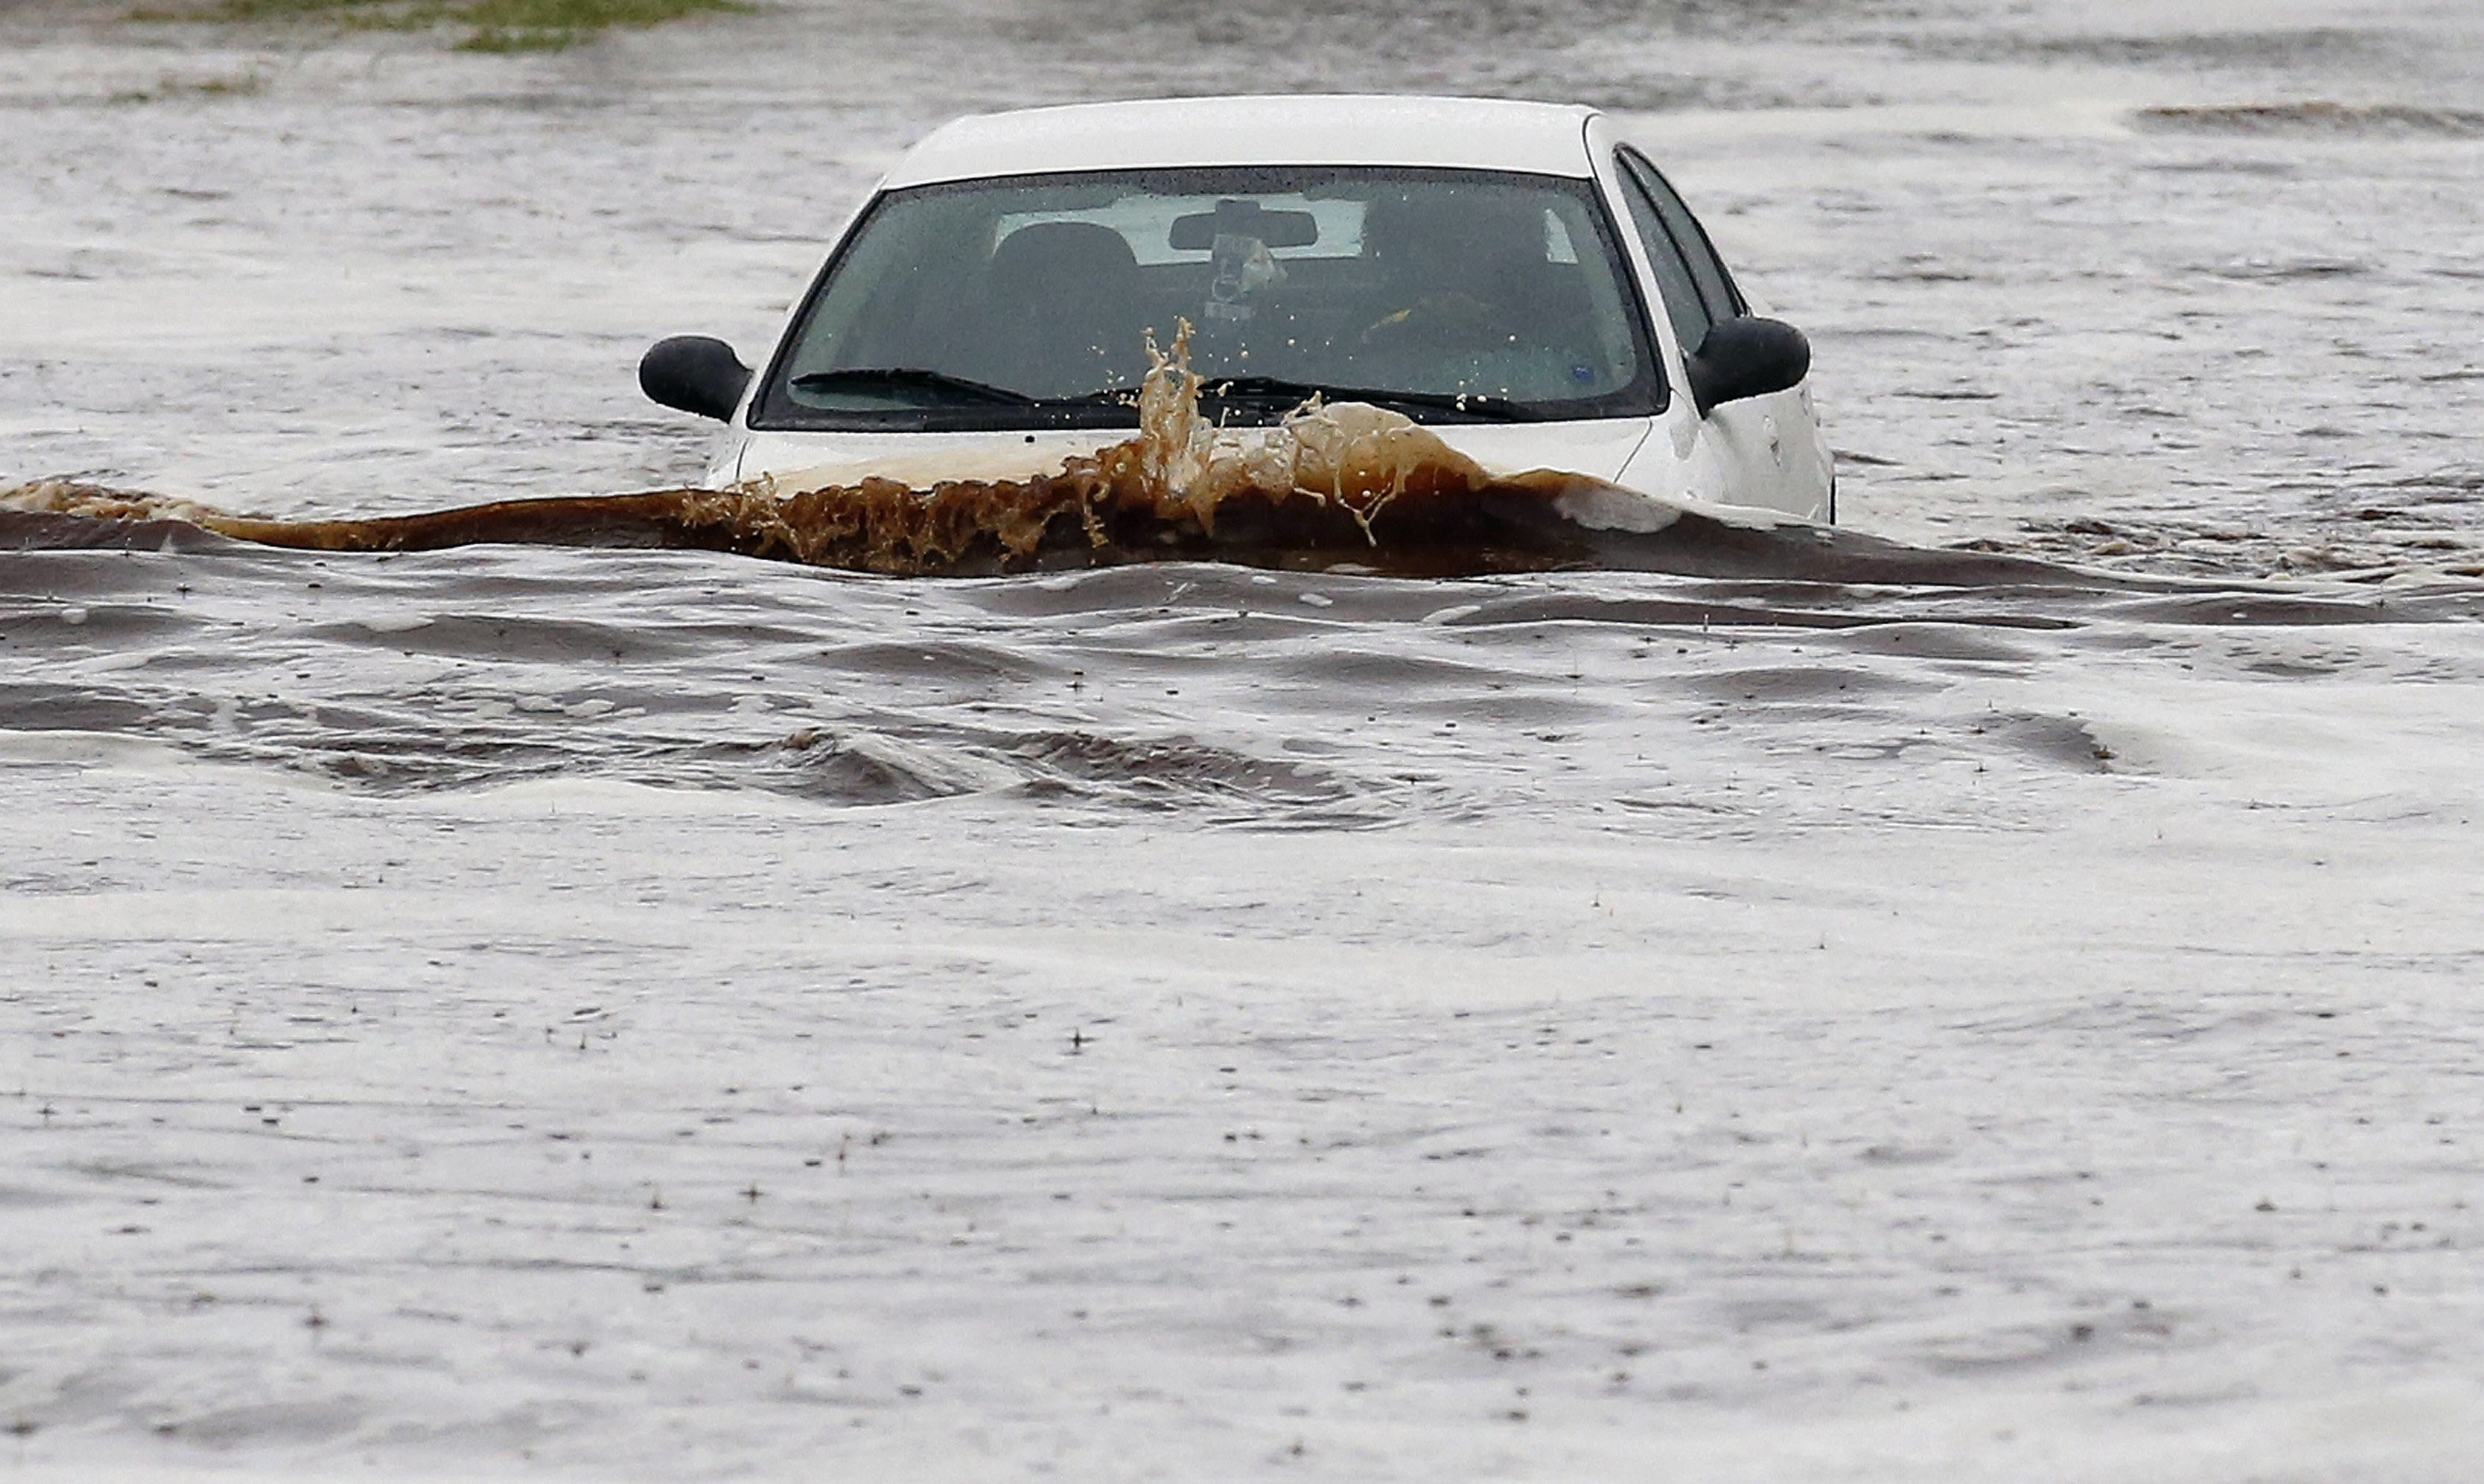 A driver tries to navigate a severely flooded street as heavy rains pour down in Phoenix, Sept. 8, 2014.